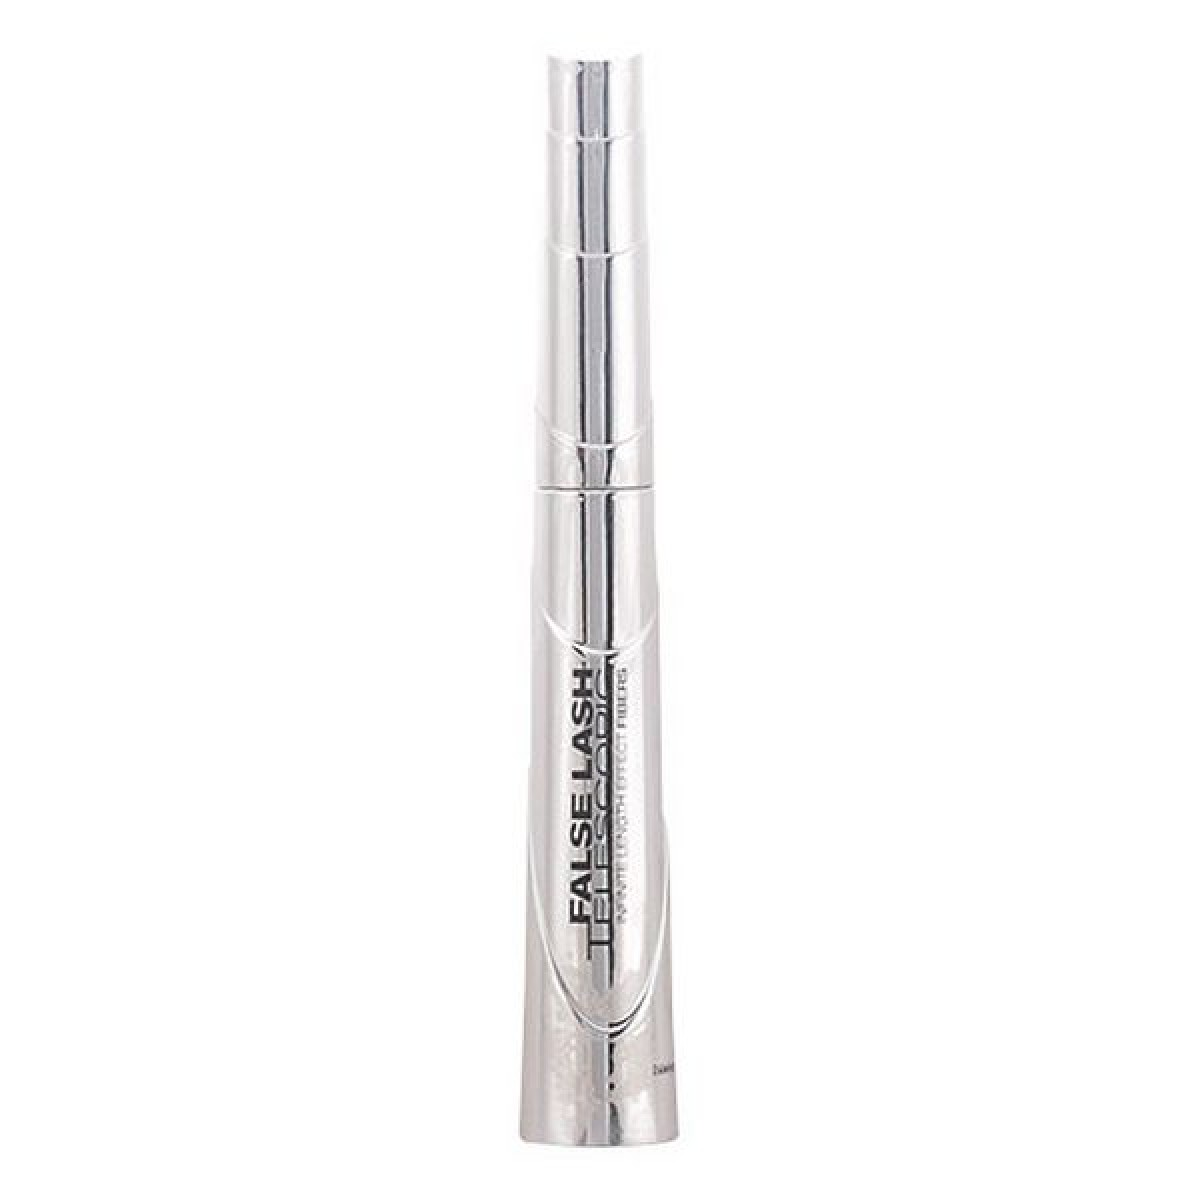 Mascara for øyenvipper Faux Cils Telescopic L\'Oreal Make Up 106710